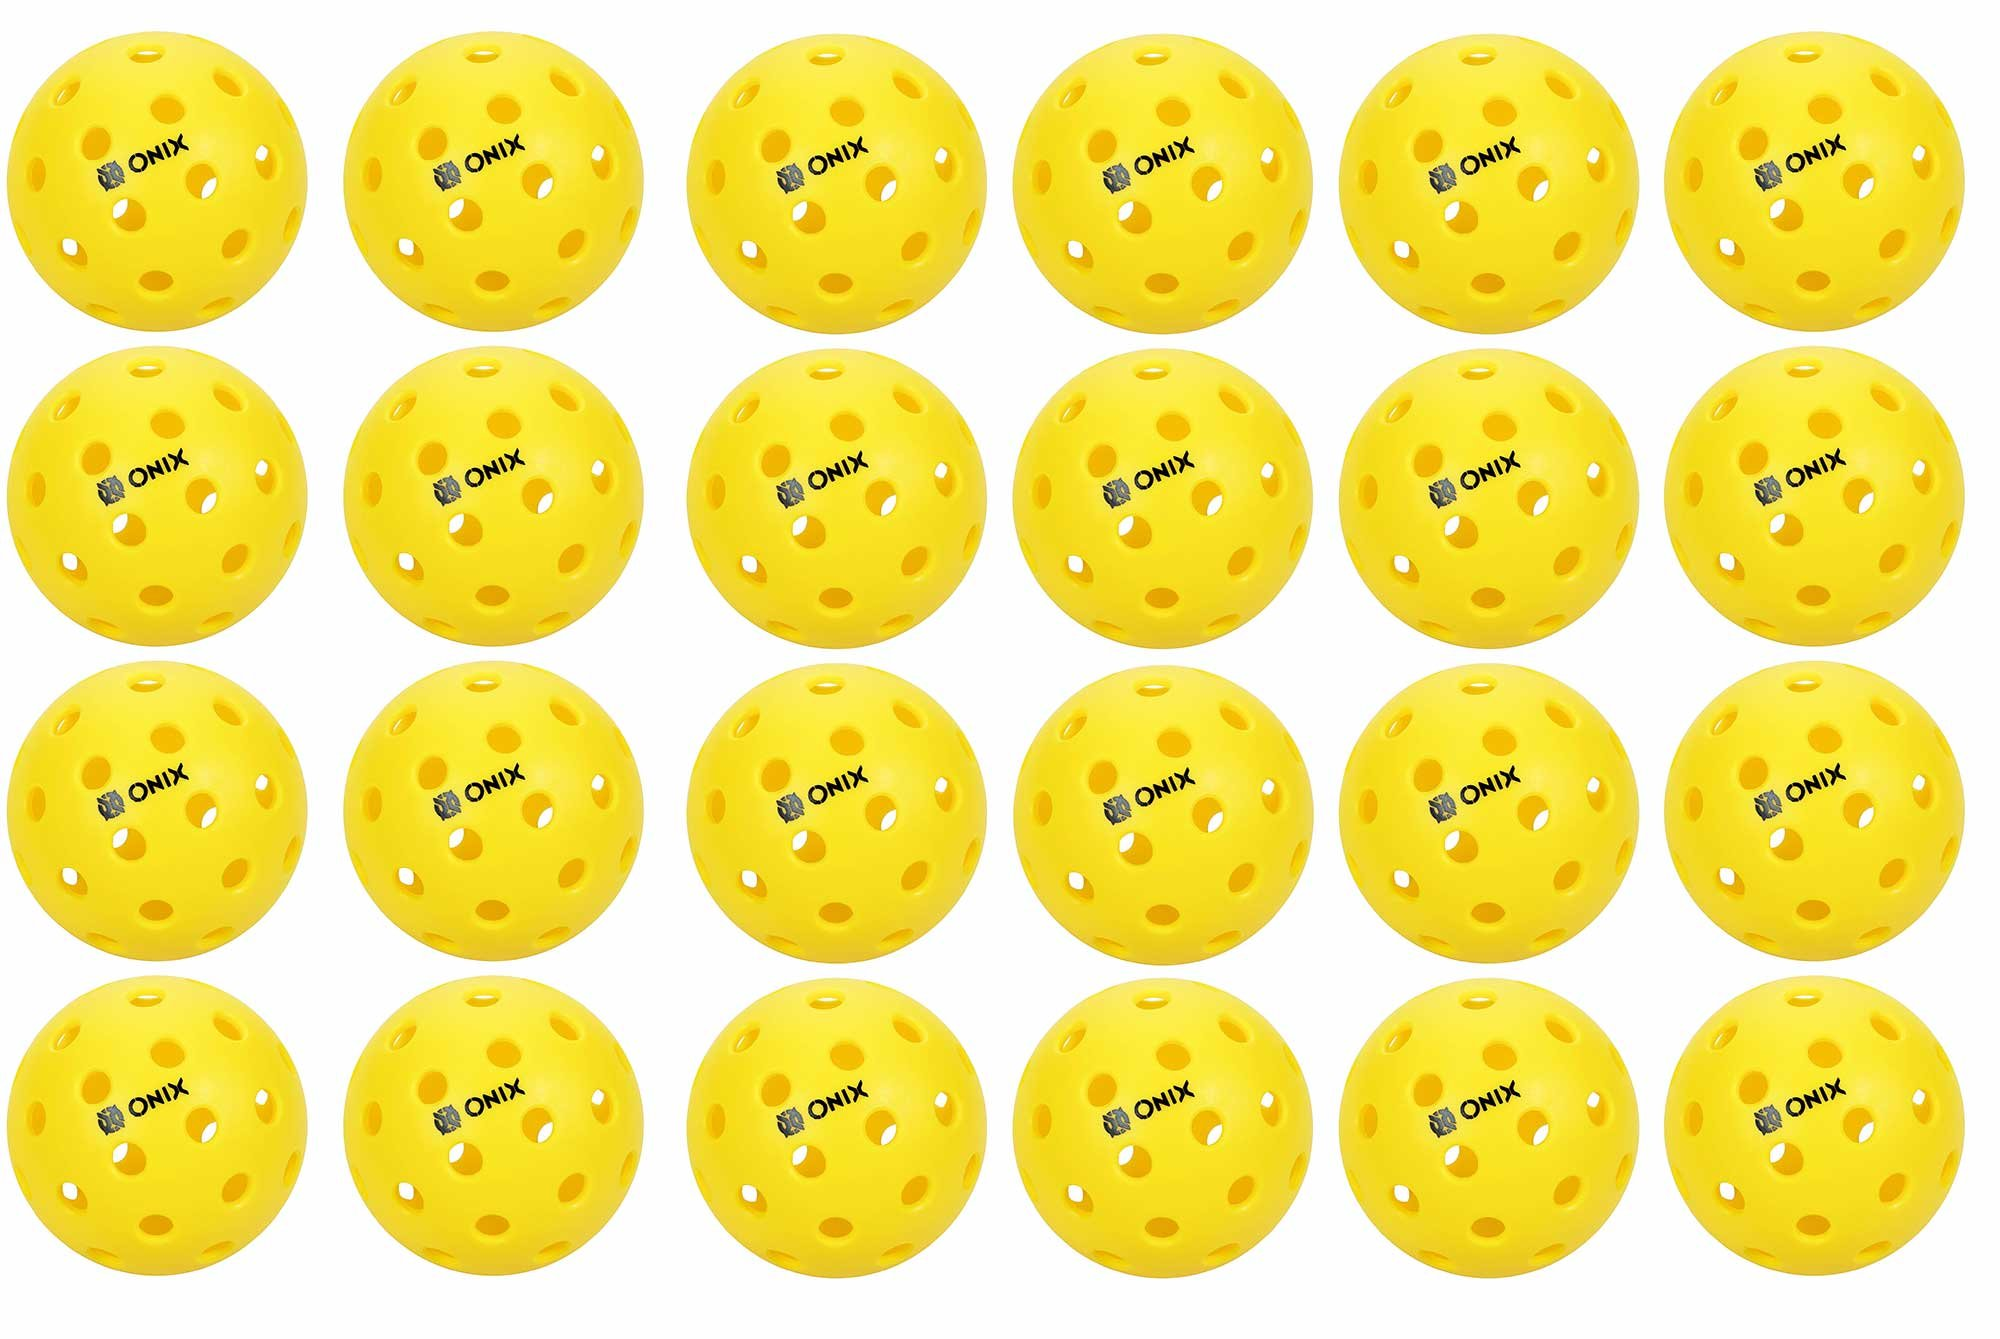 Onix Pure 2 Outdoor Pickleball Balls 24 PACK YELLOW by Onix